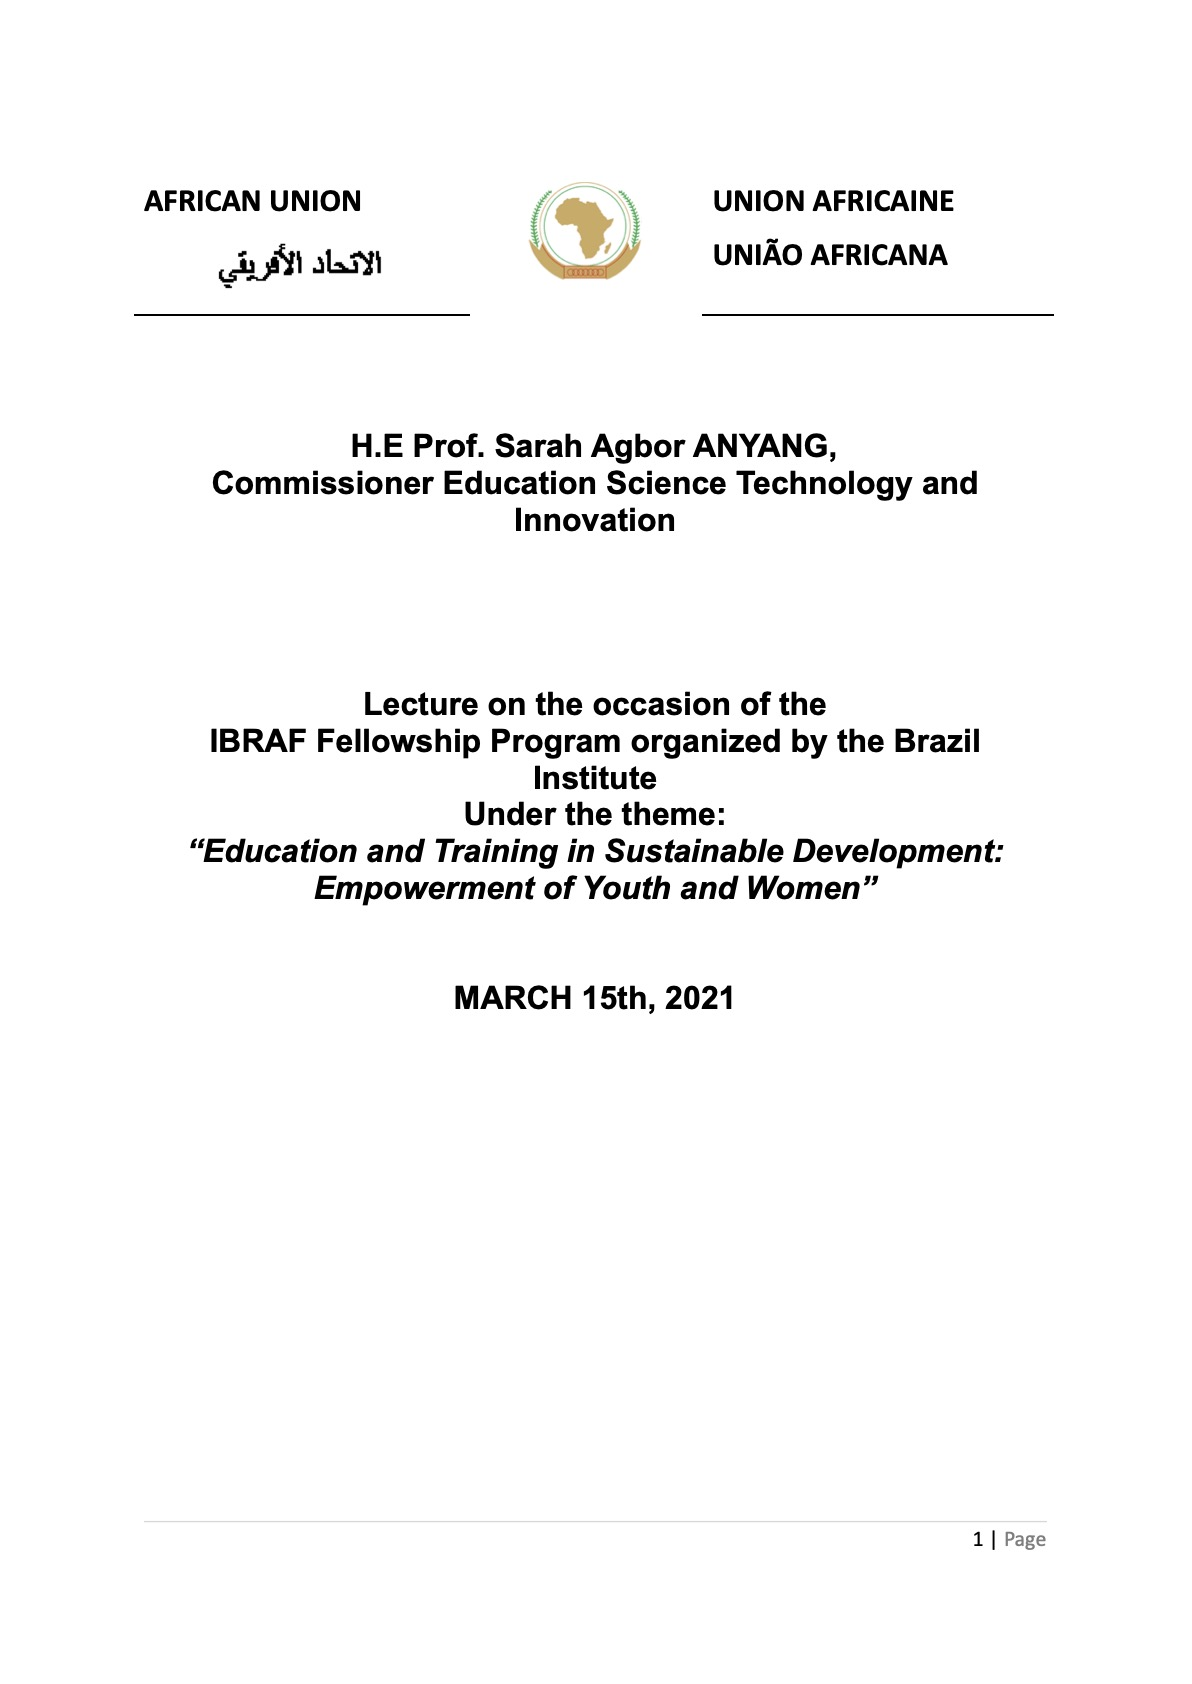 FINAL LECTURE FOR THE BRAZIL INSTITUTE 15 MARCH 2021.doc (1)